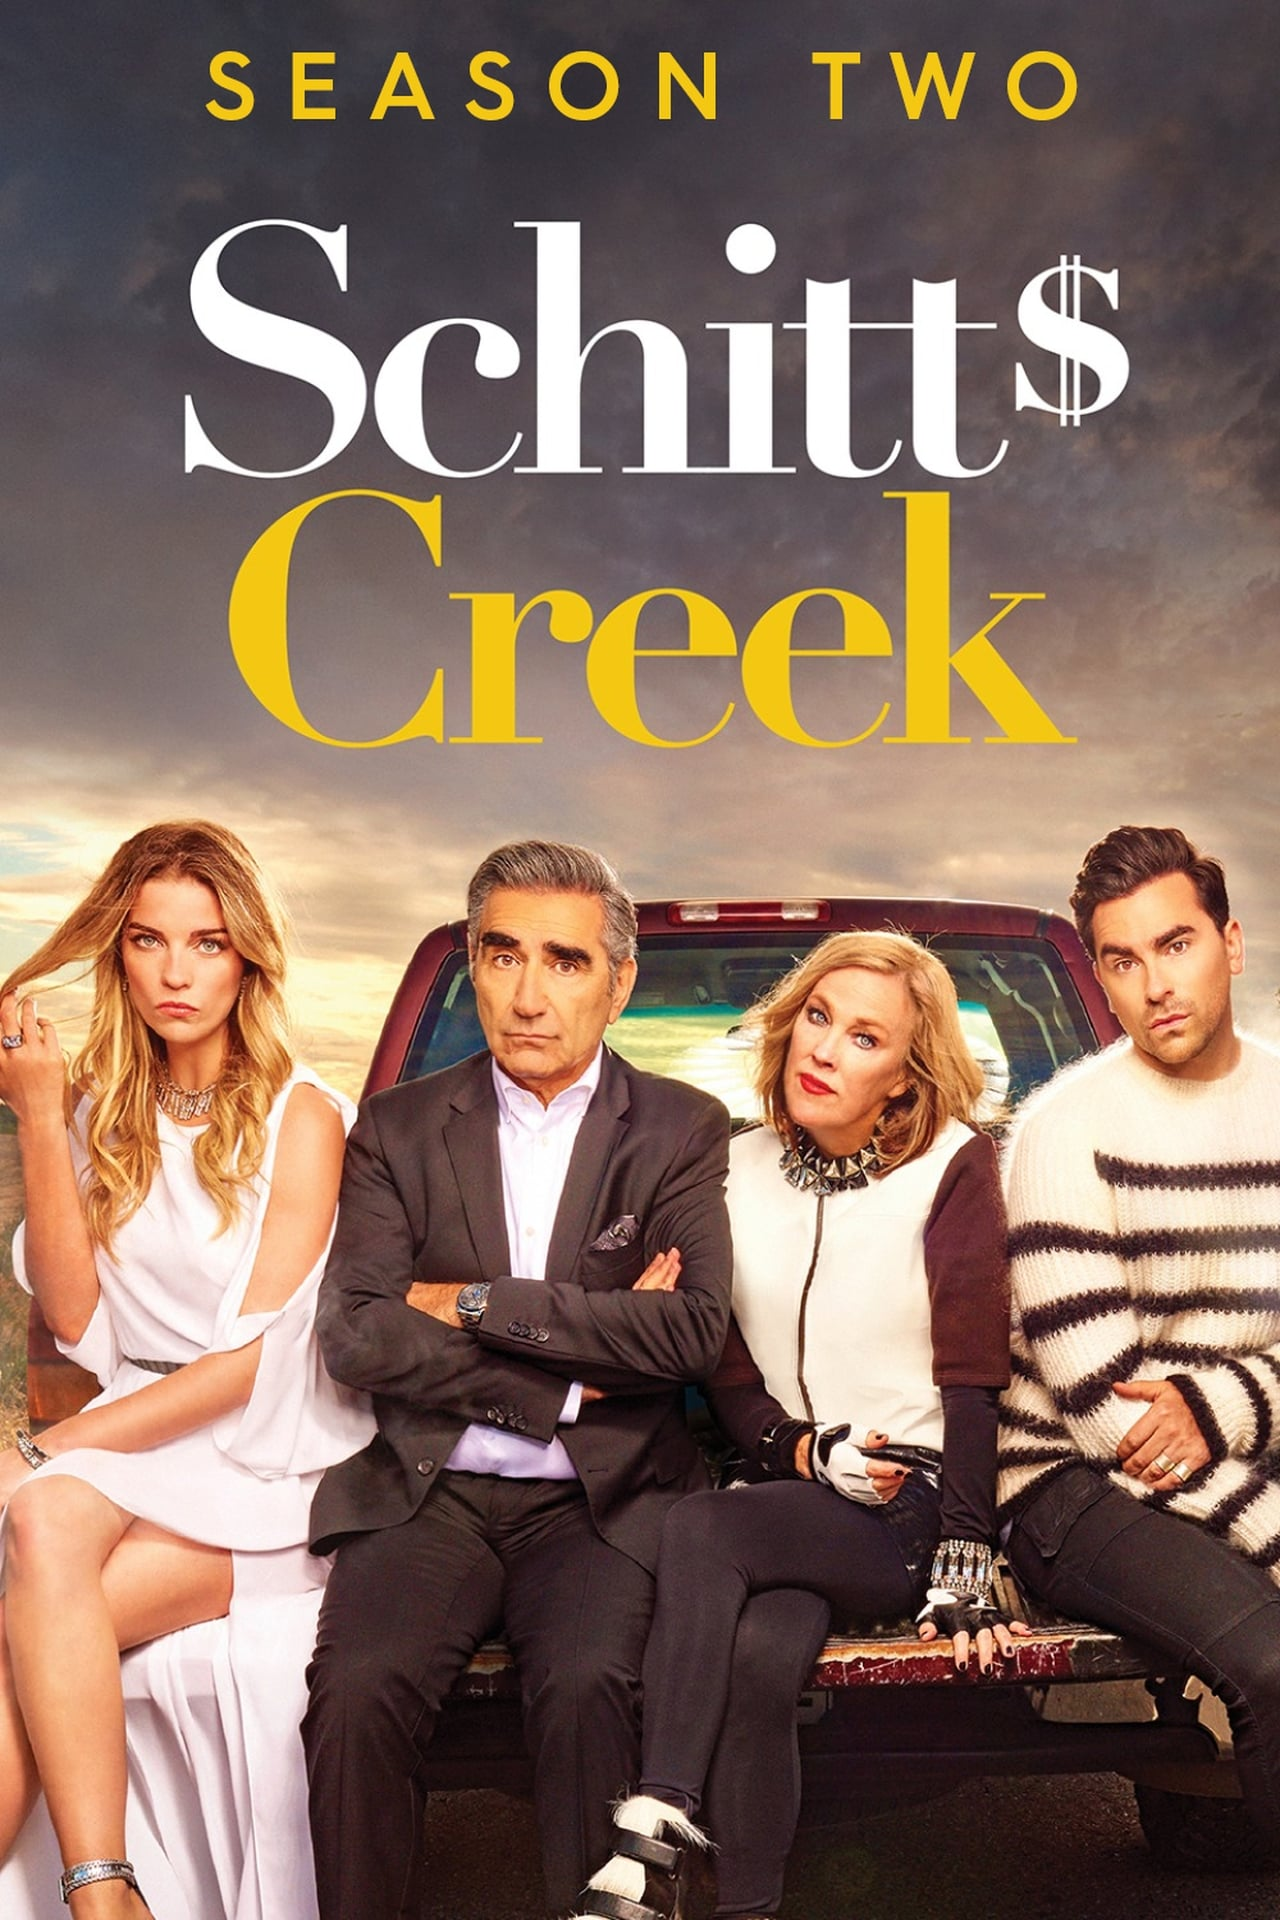 Watch Schitt's Creek Season 2 Online